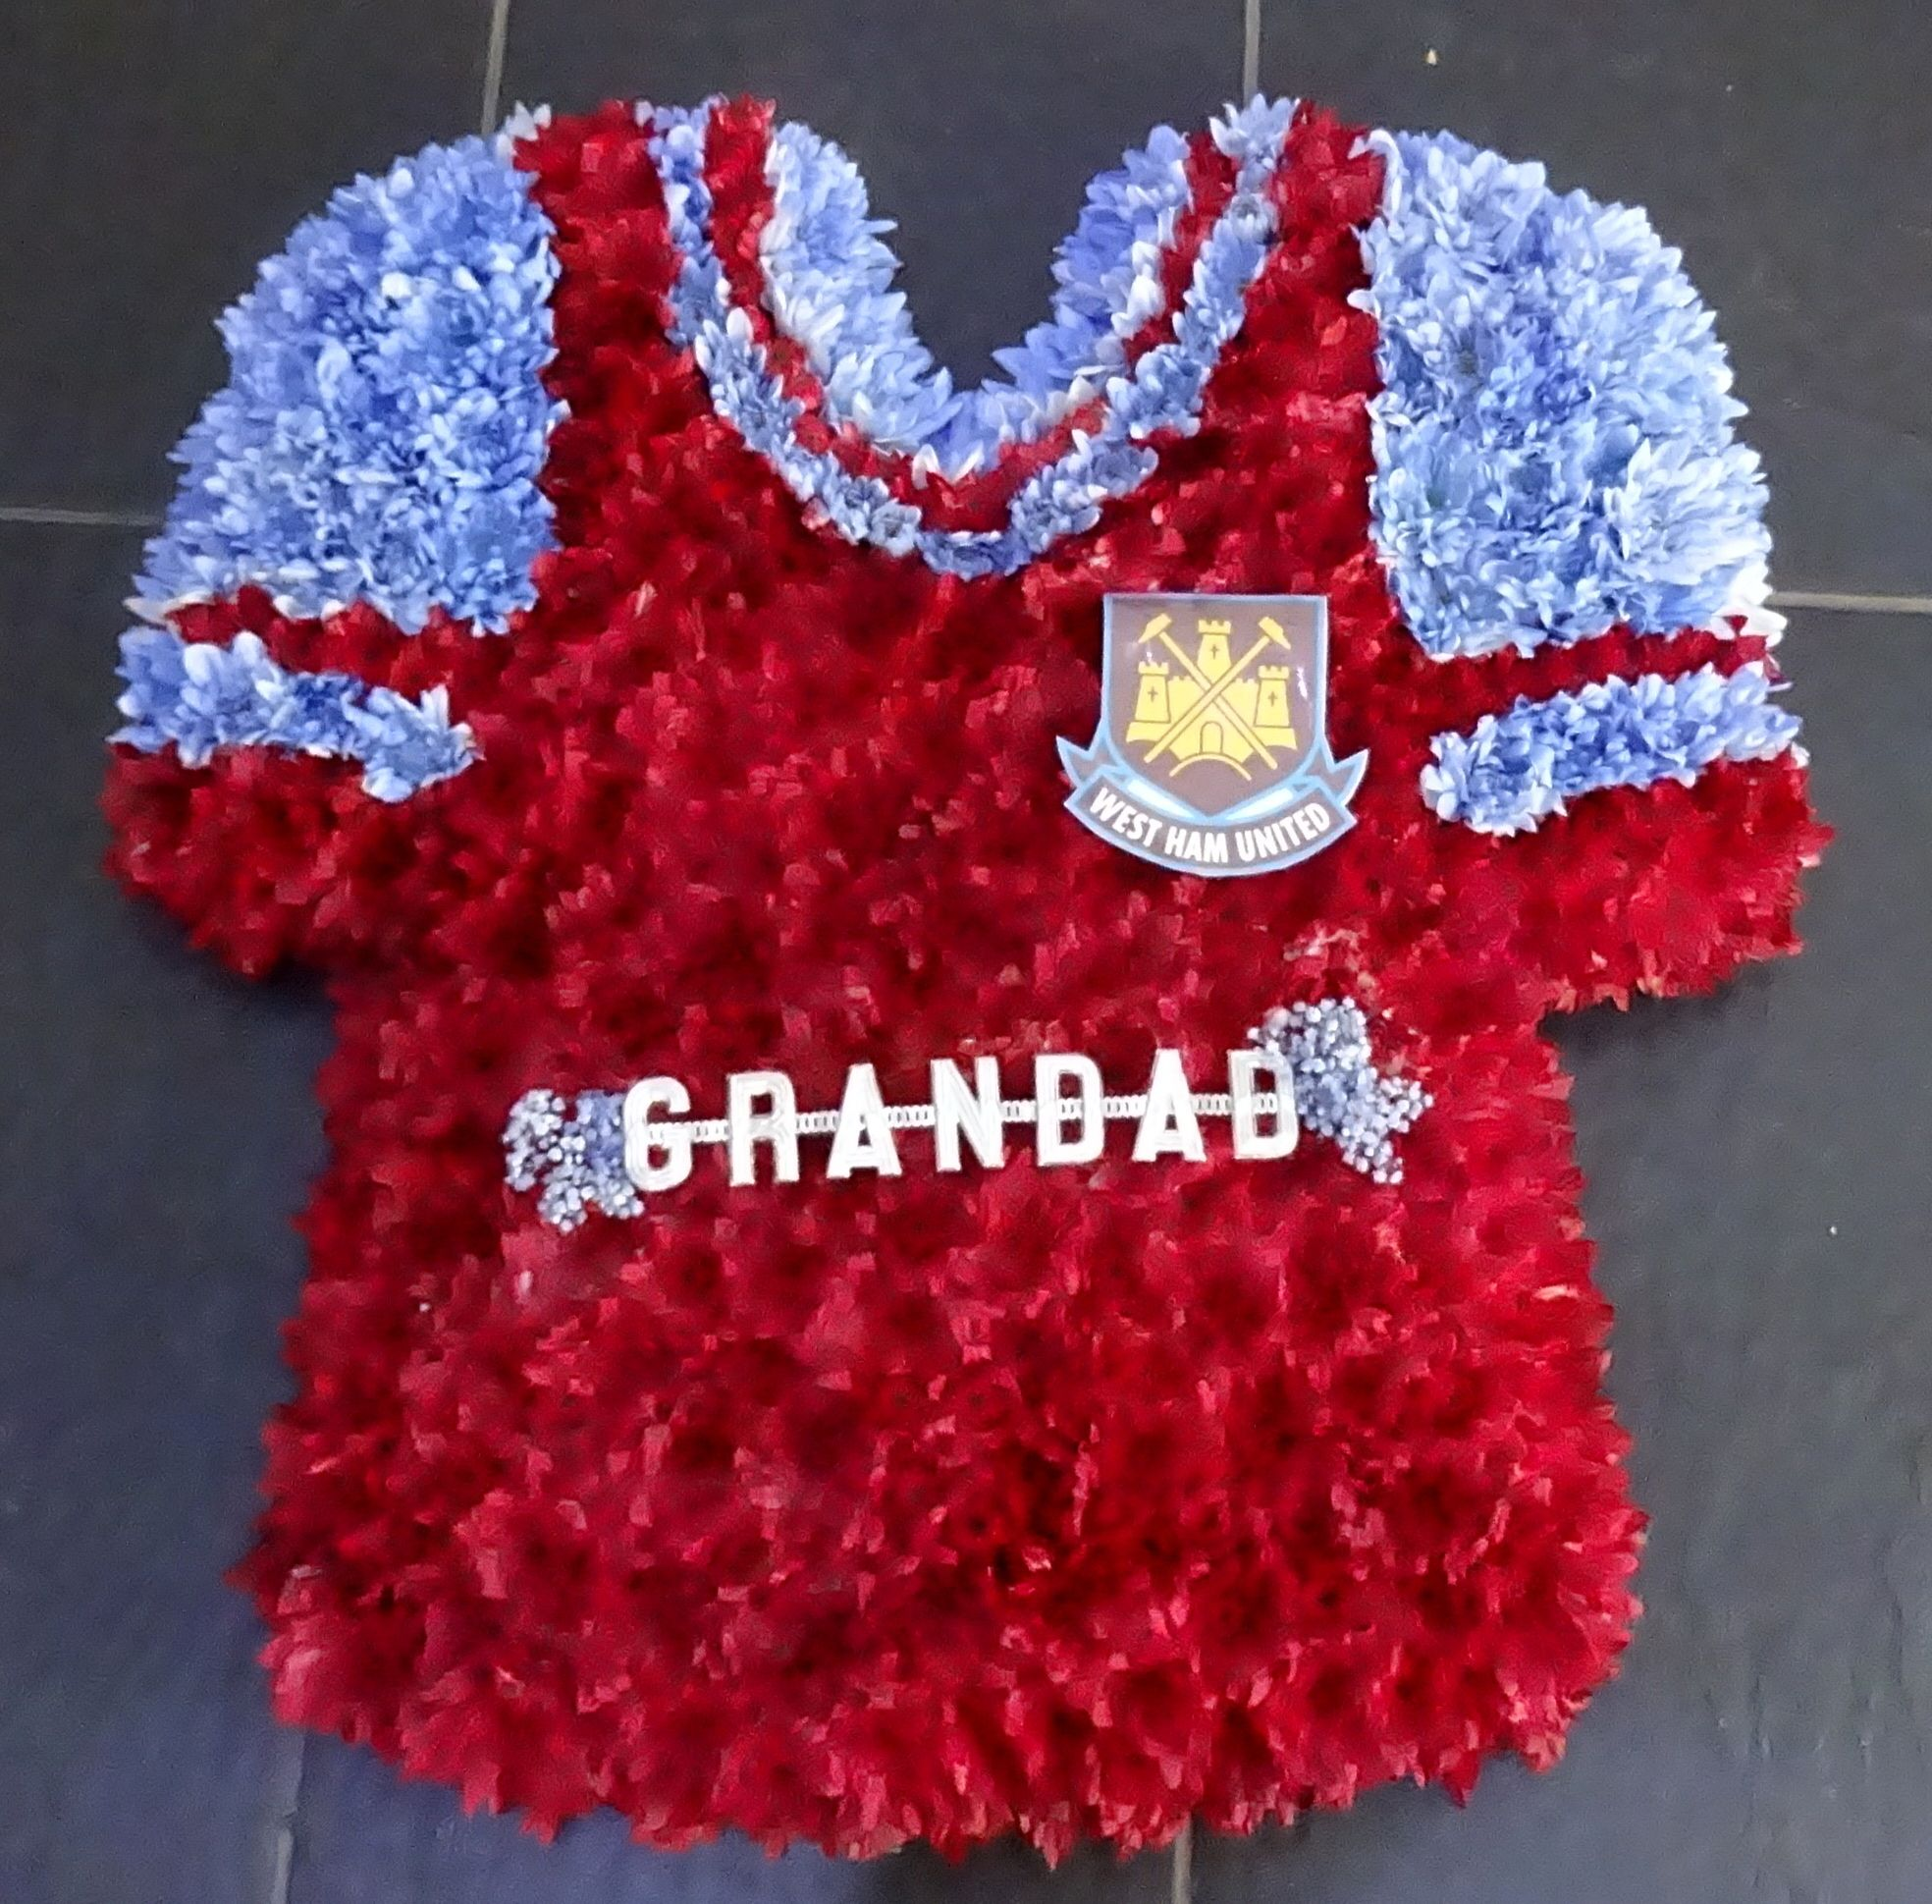 Football shirt west ham funeral flowers pinterest west ham football shirt west ham izmirmasajfo Images